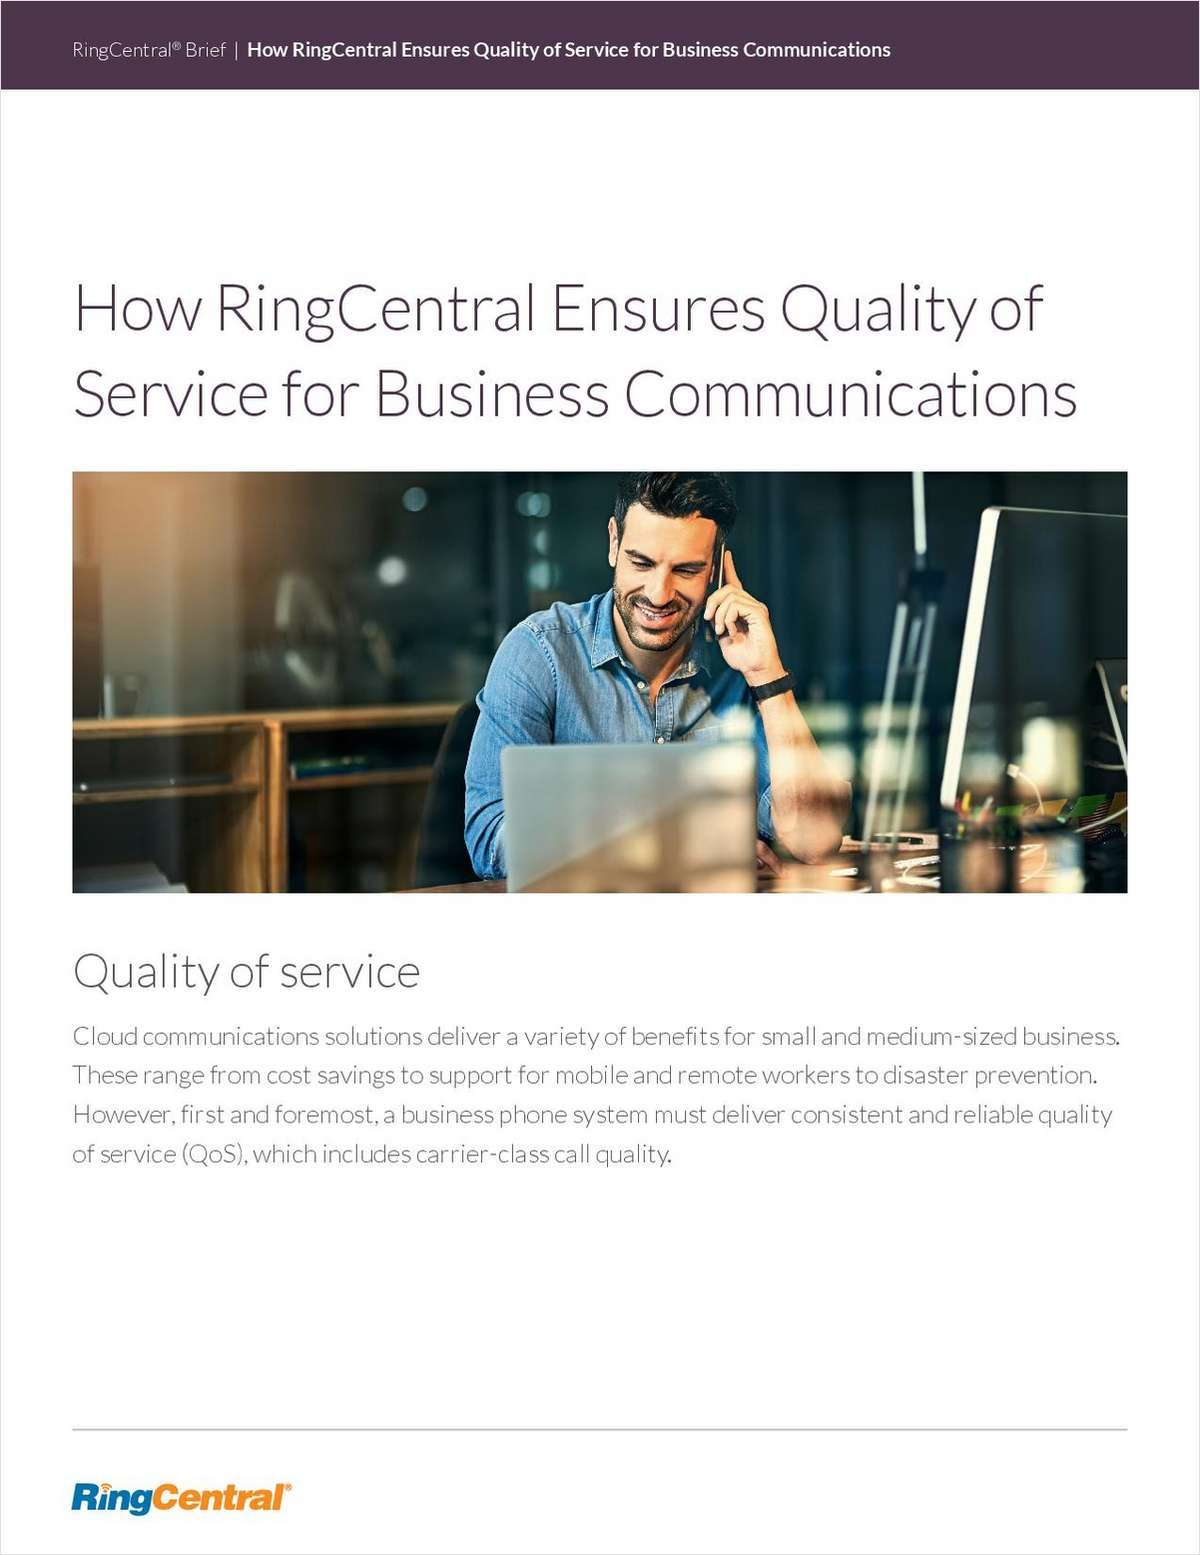 How RingCentral Ensures Quality of Service for Business Communications